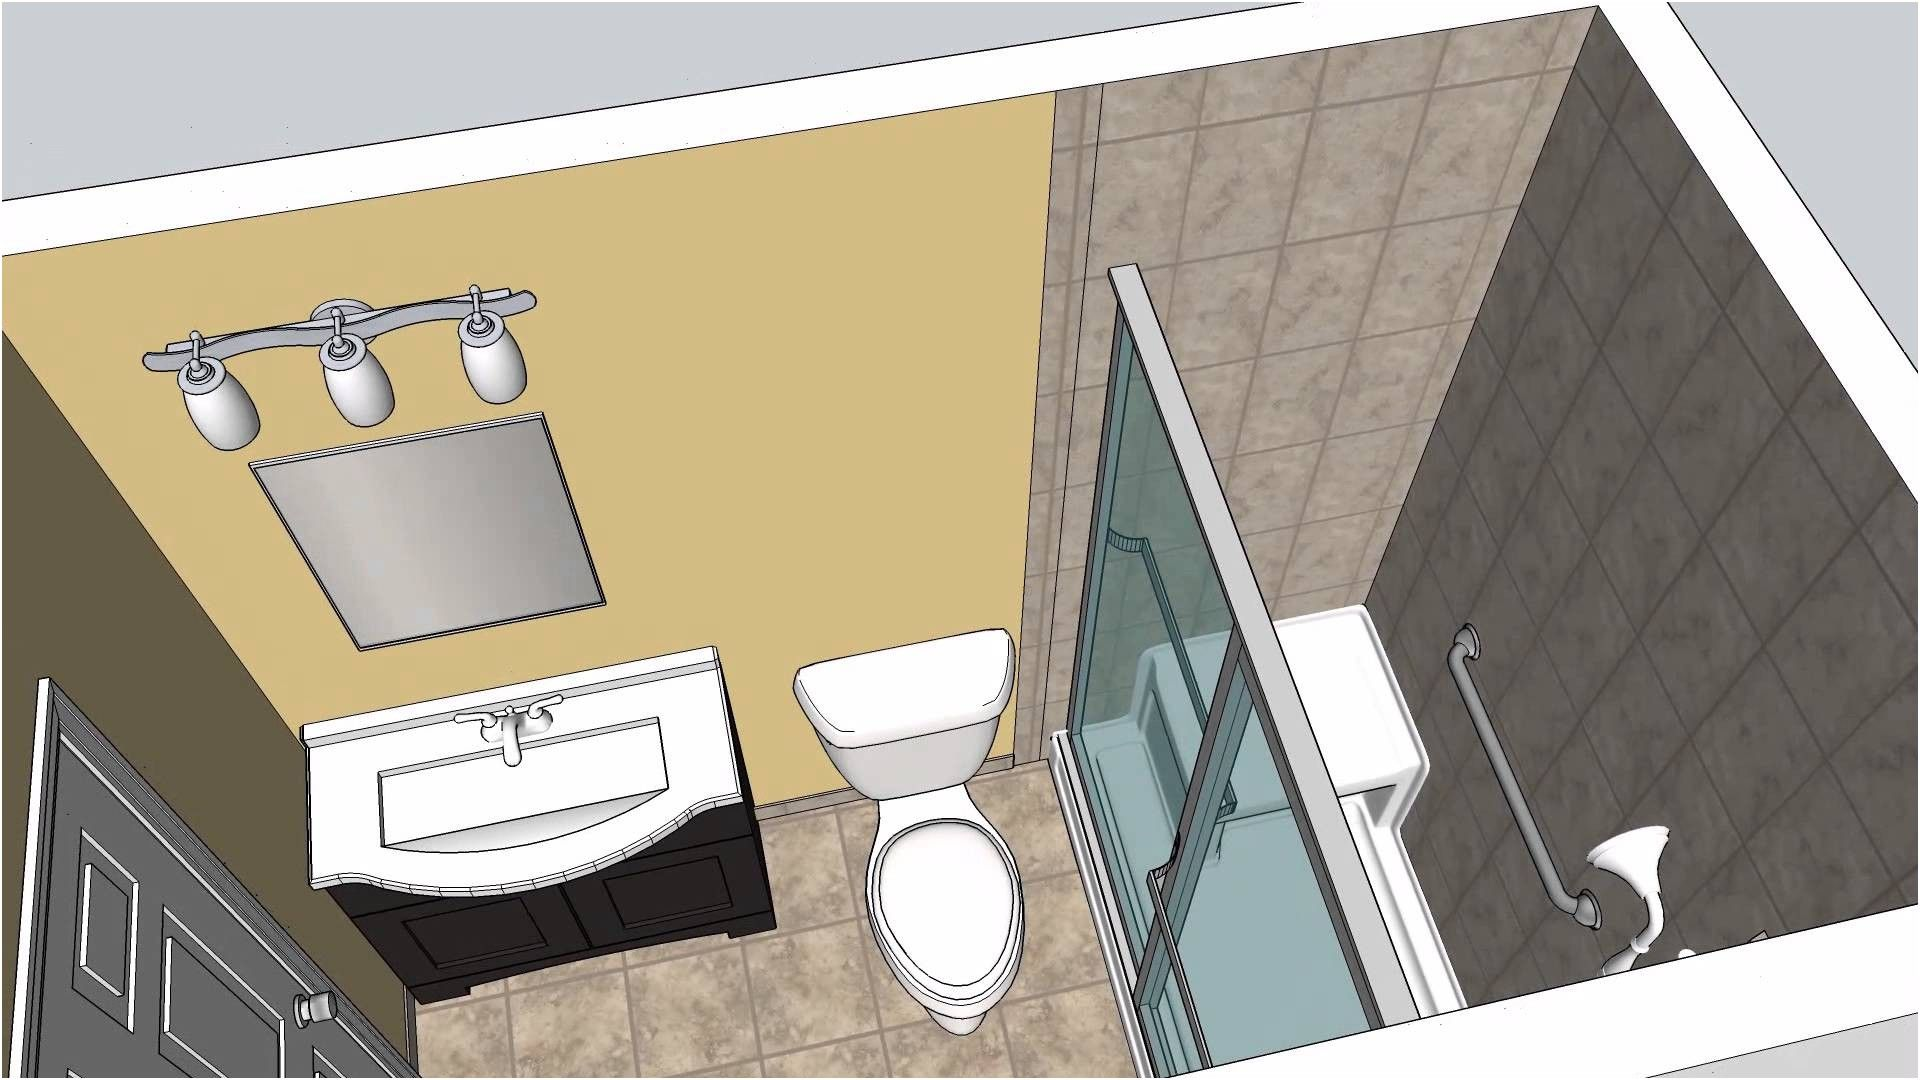 Cad Bathroom Design bath cad bathroom design designer pro bathroom layout sample 1